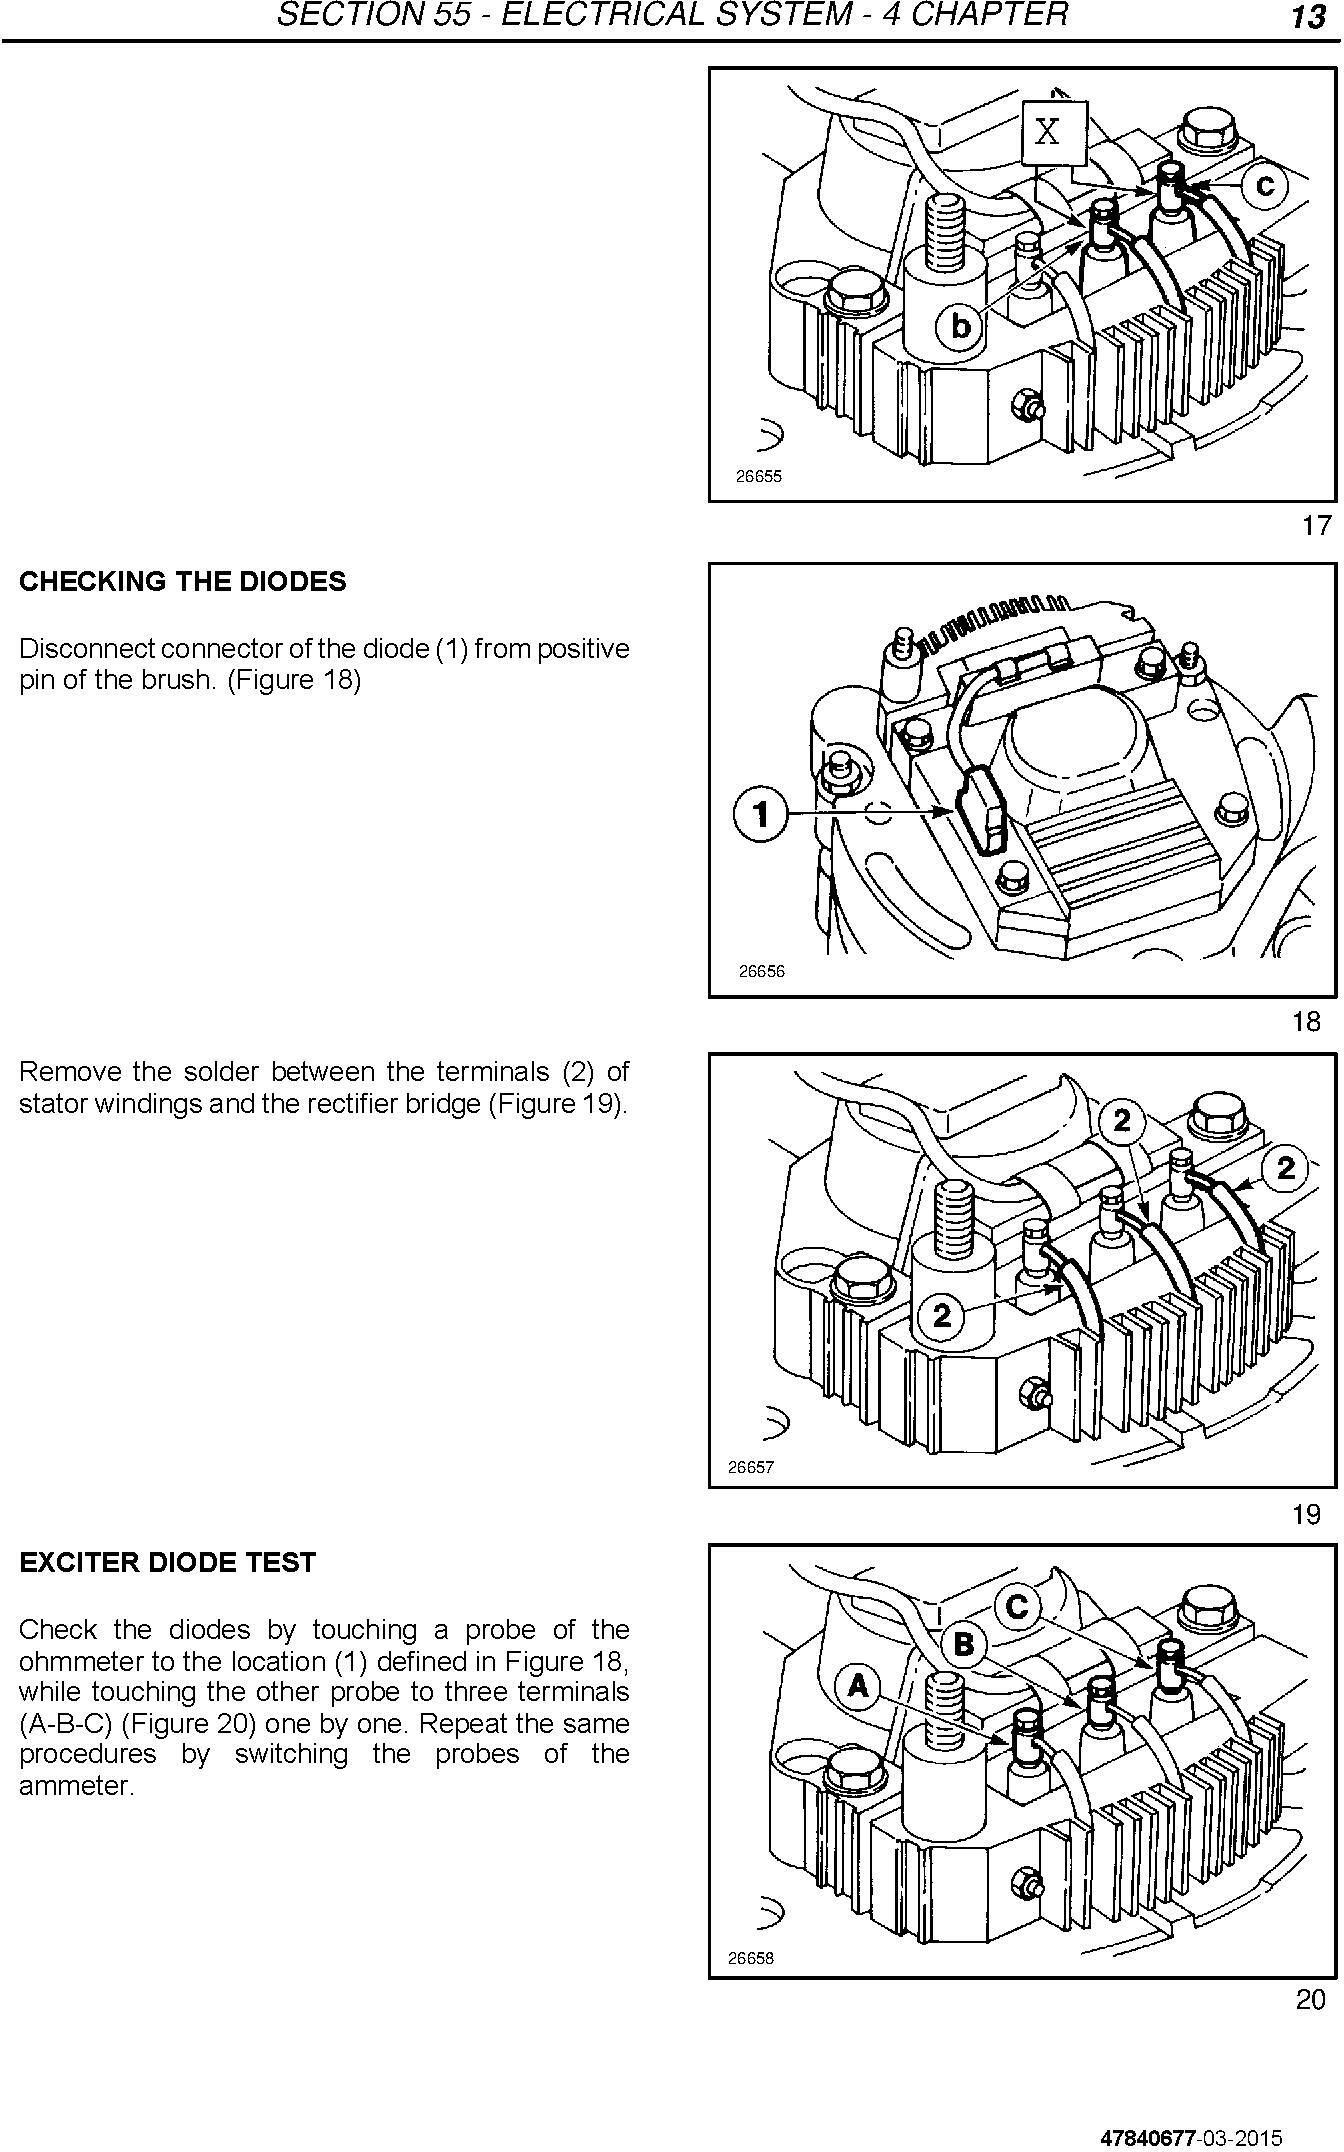 New Holland TD3.50 Tractor Service Manual - 2